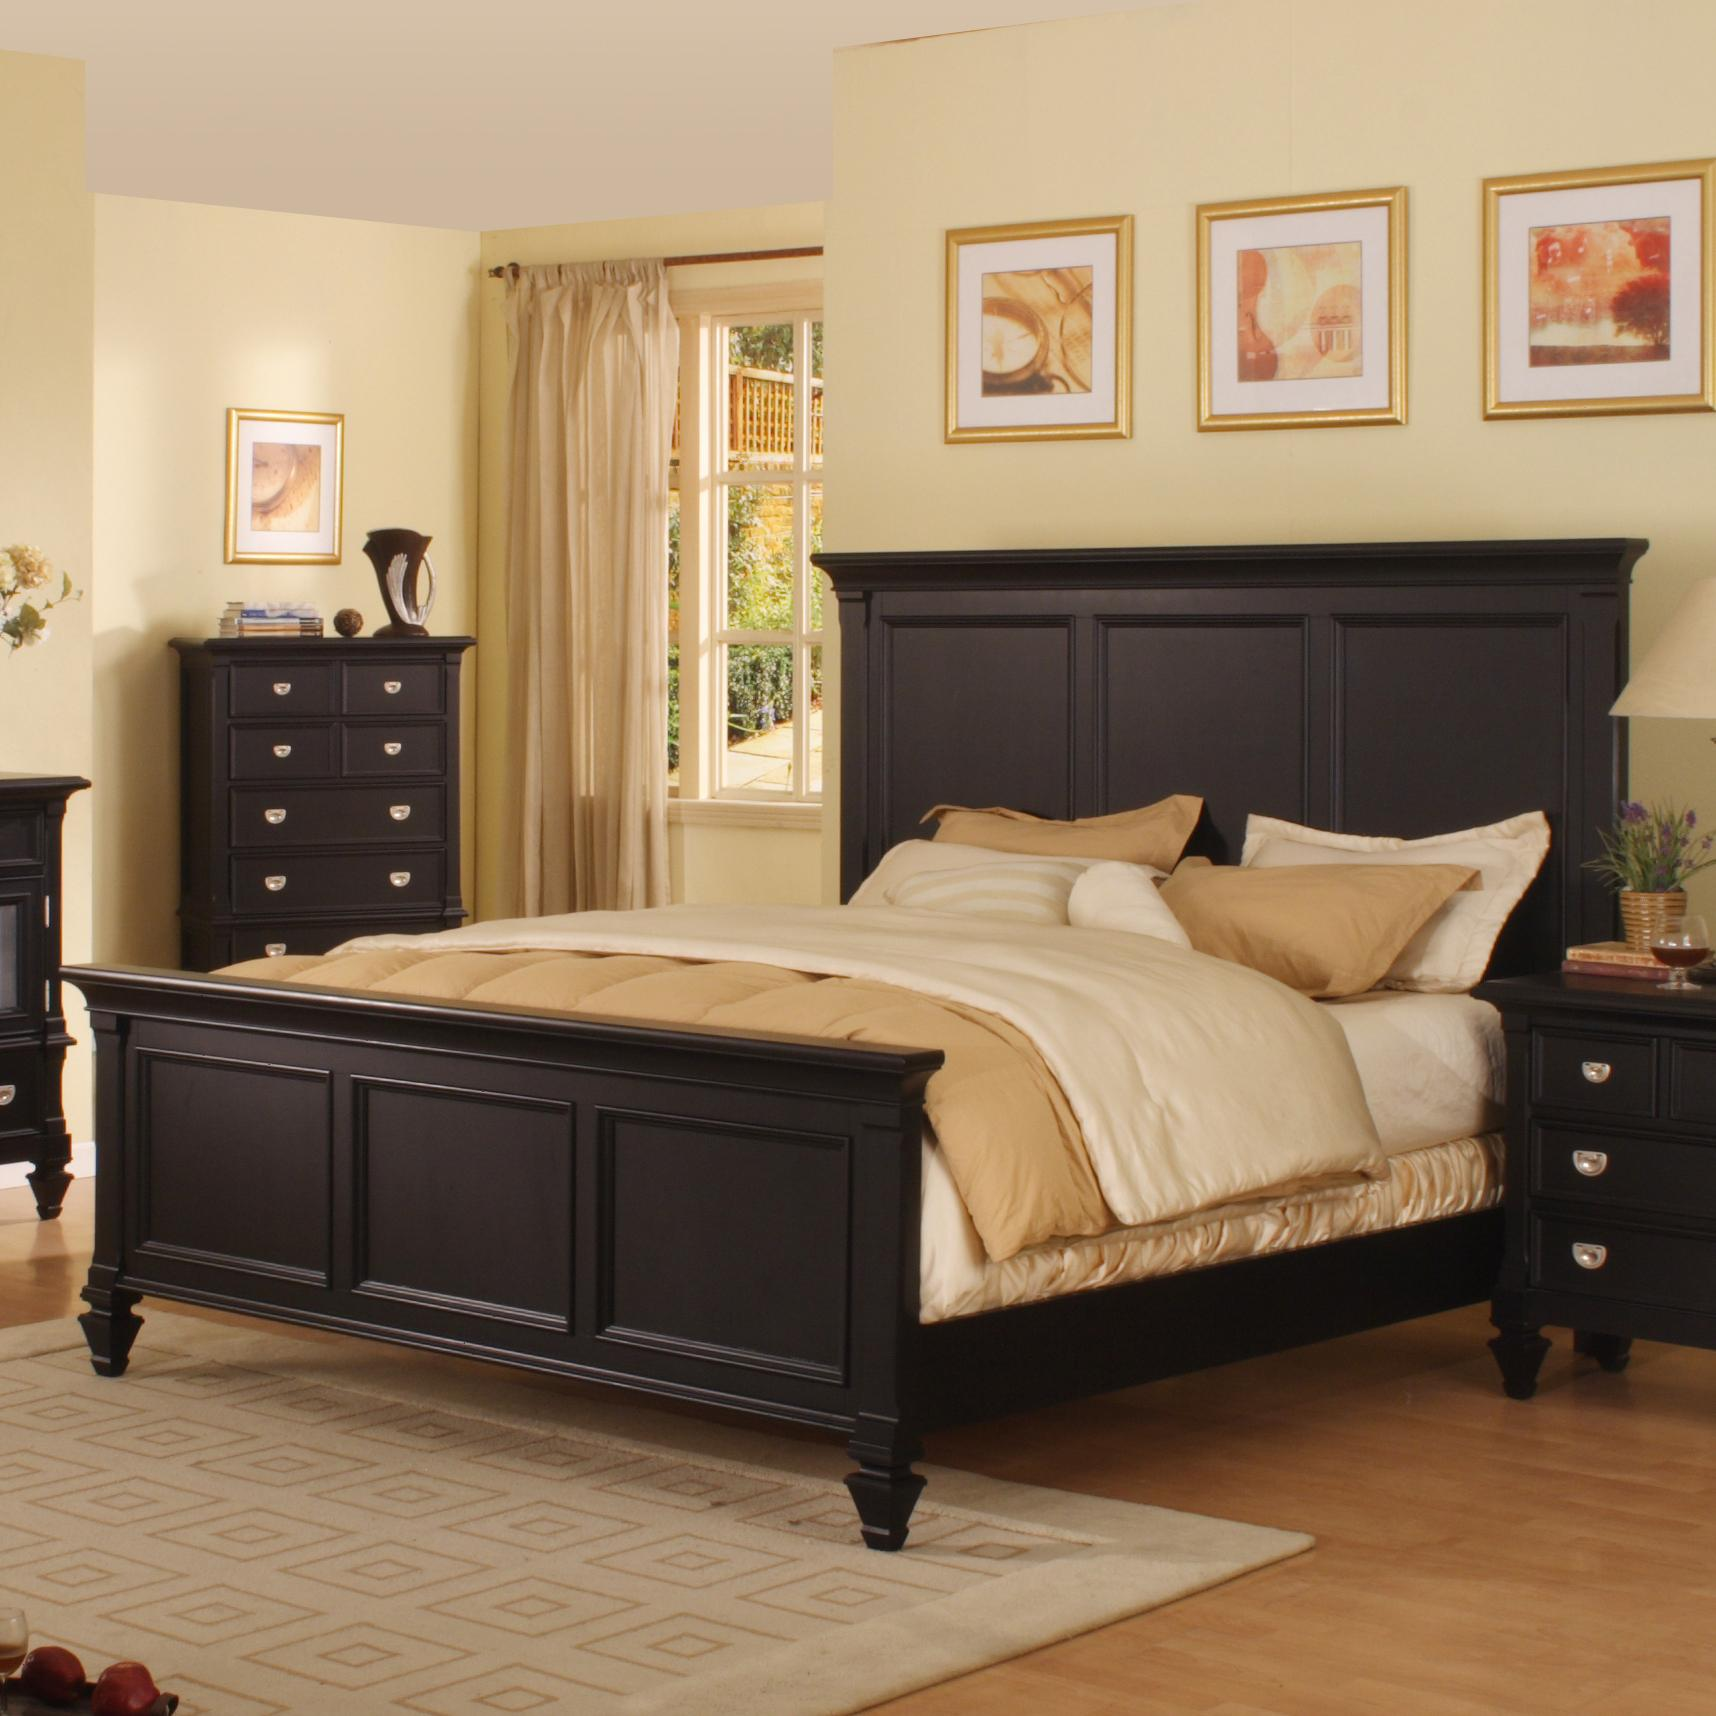 Morris Home Furnishings Surrey Surrey Full/Queen Panel Bed - Item Number: 494-+21H+21F+21R